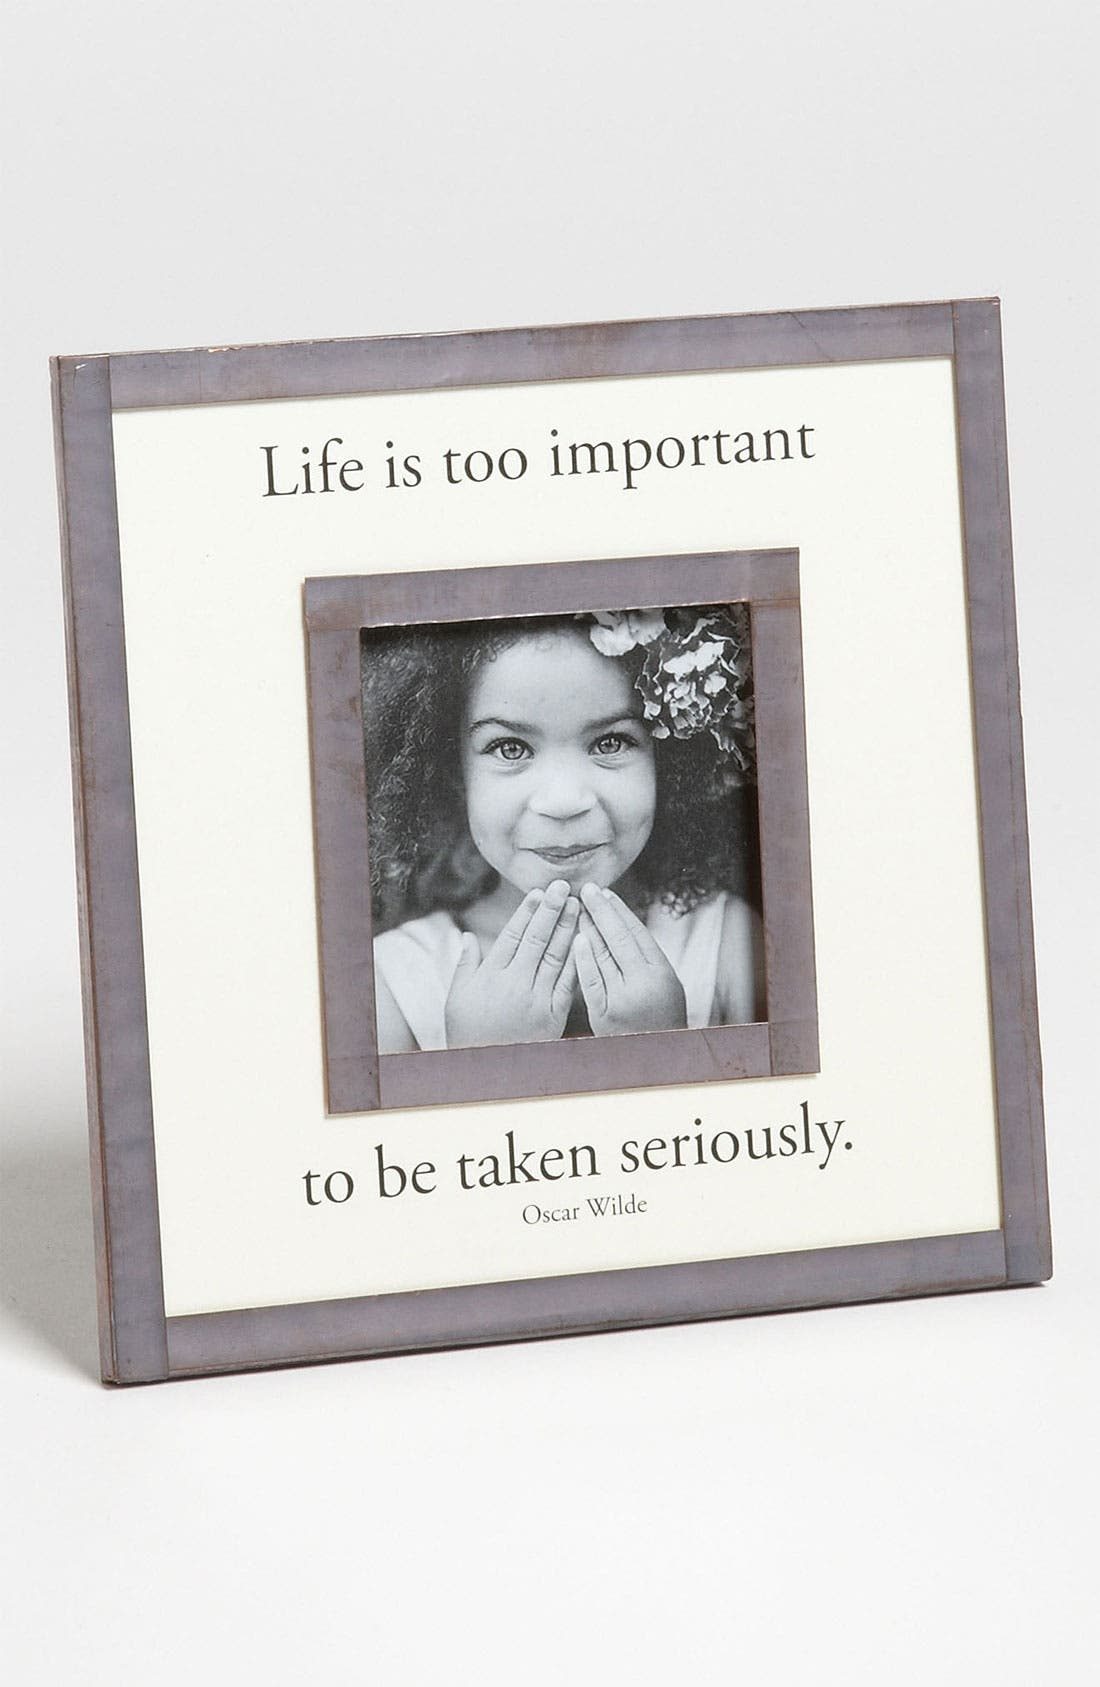 Alternate Image 1 Selected - Ben's Garden 'Life Is Too Important' Picture Frame